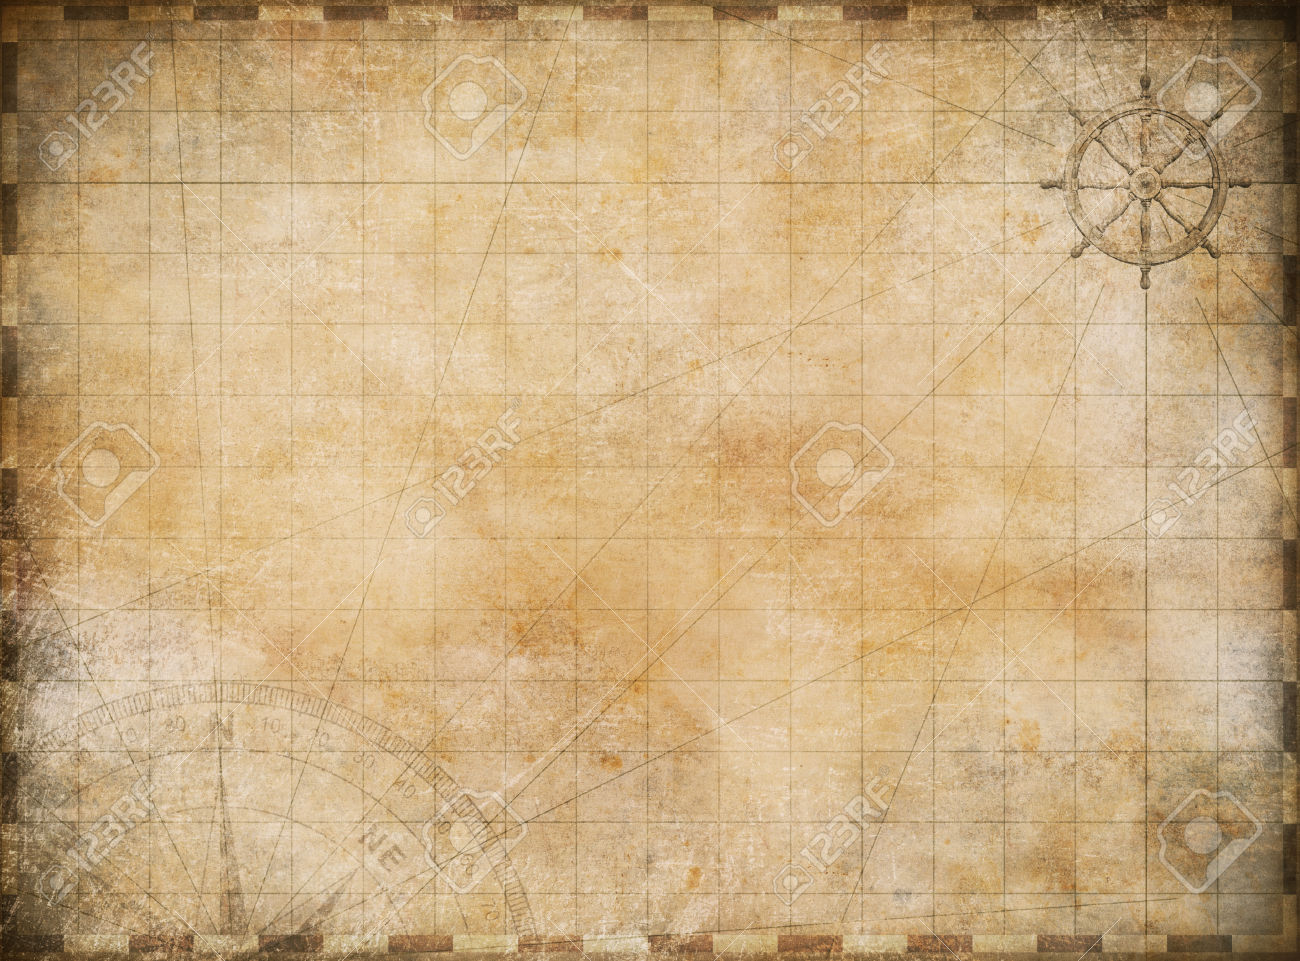 Old Map Exploration And Adventure Background Stock Photo, Picture